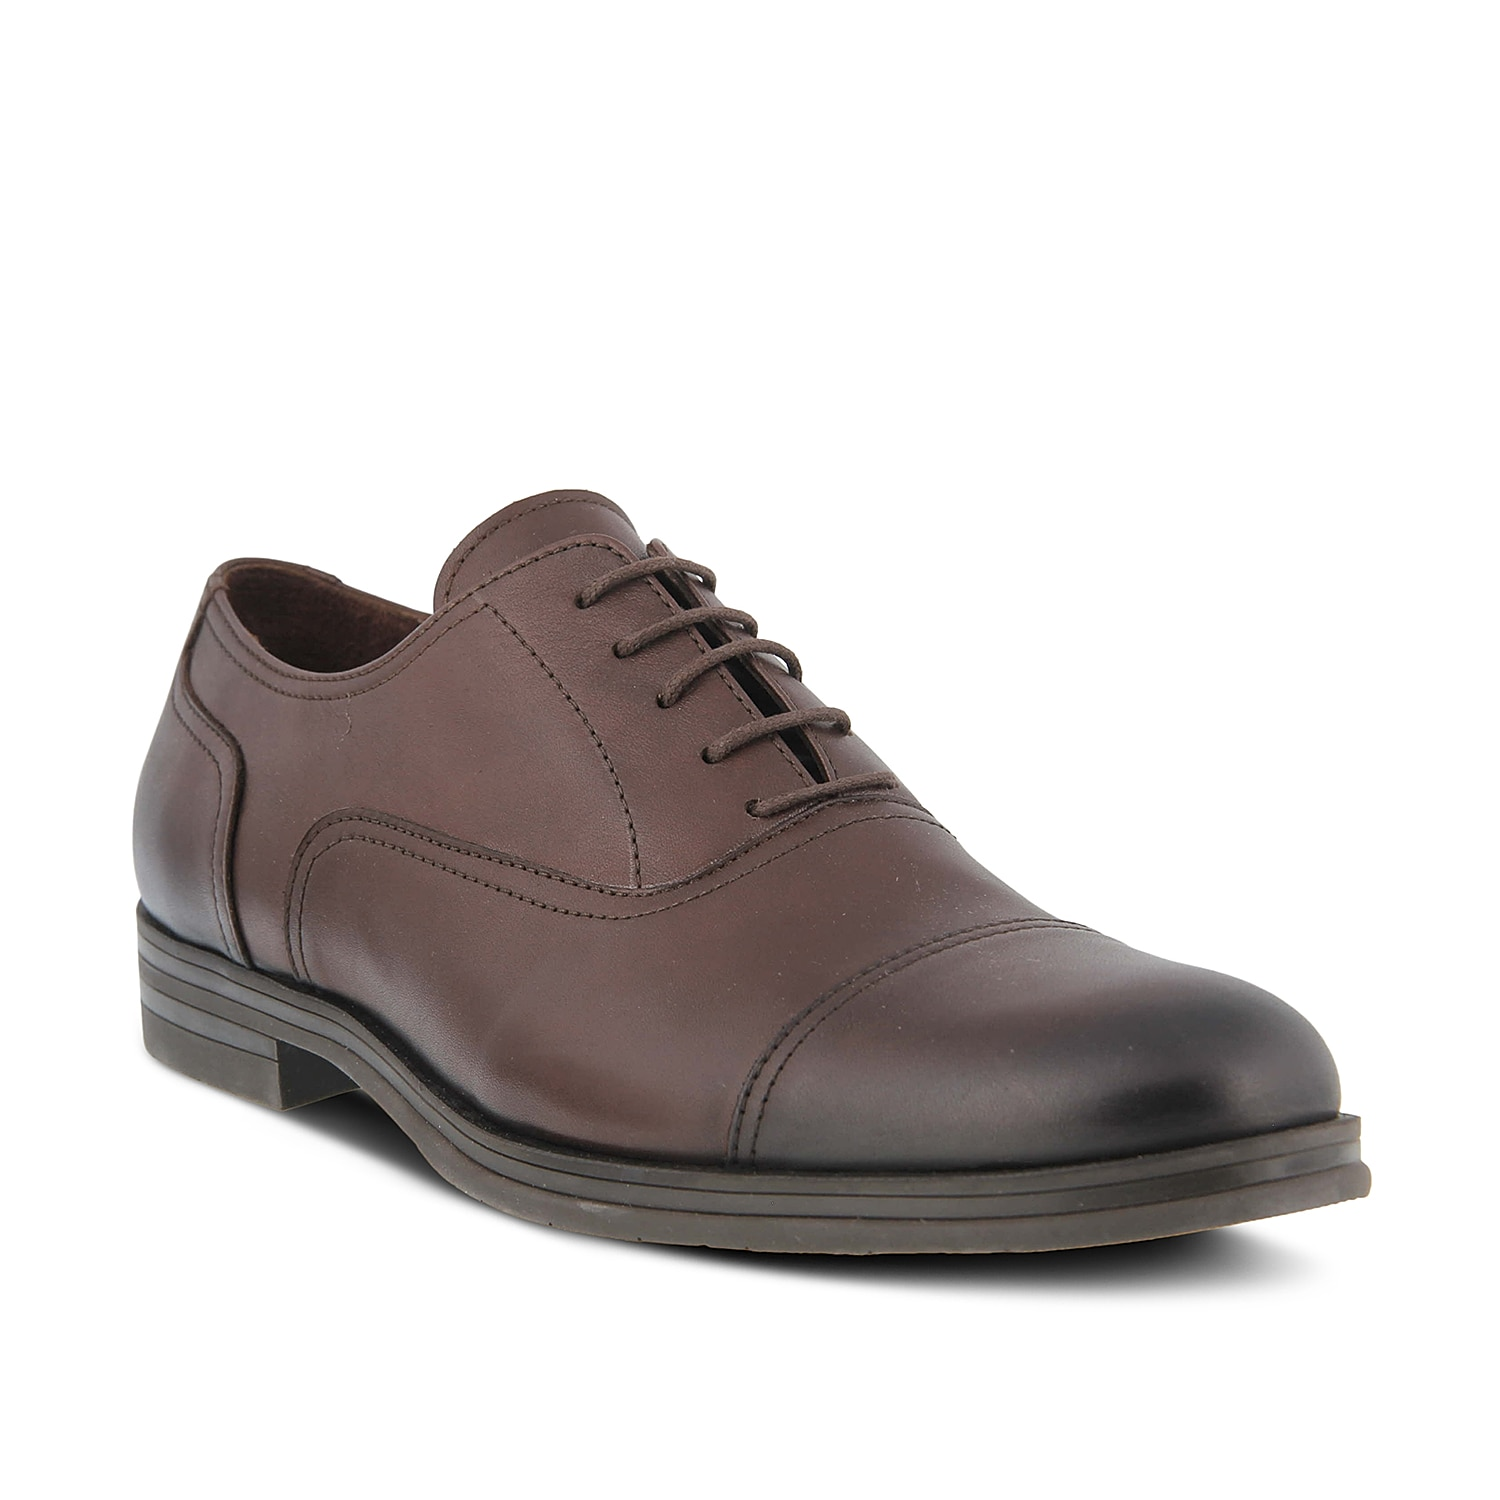 The Albert oxford from Spring Step features a smooth leather upper for handsome styling. This cap toe pair is versatile enough to pair with any tailored look!